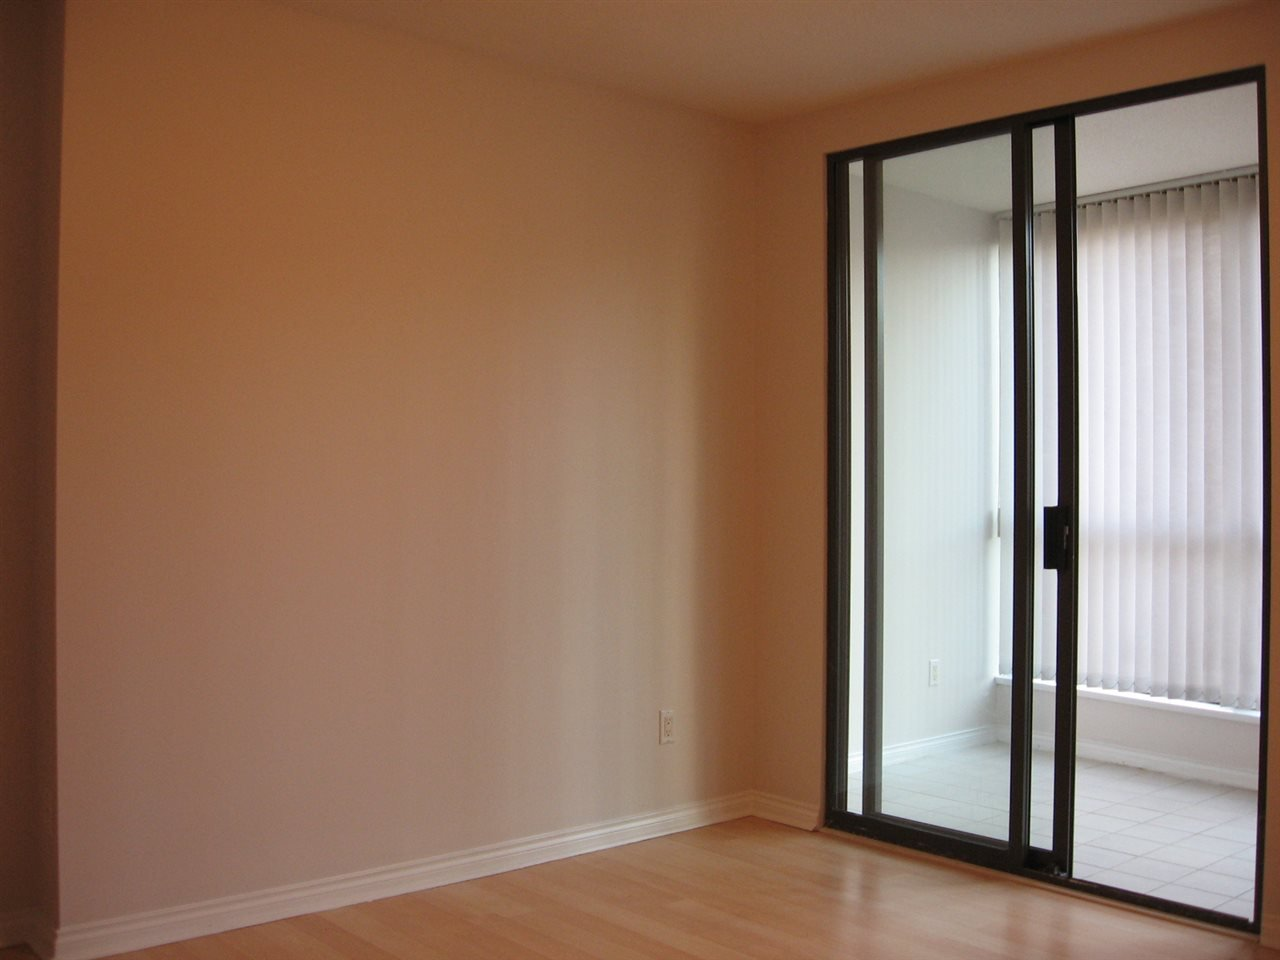 Photo 11: Photos: 801-1189 Howe Street in Vancouver: Yaletown Condo for rent (Downtown Vancouver)